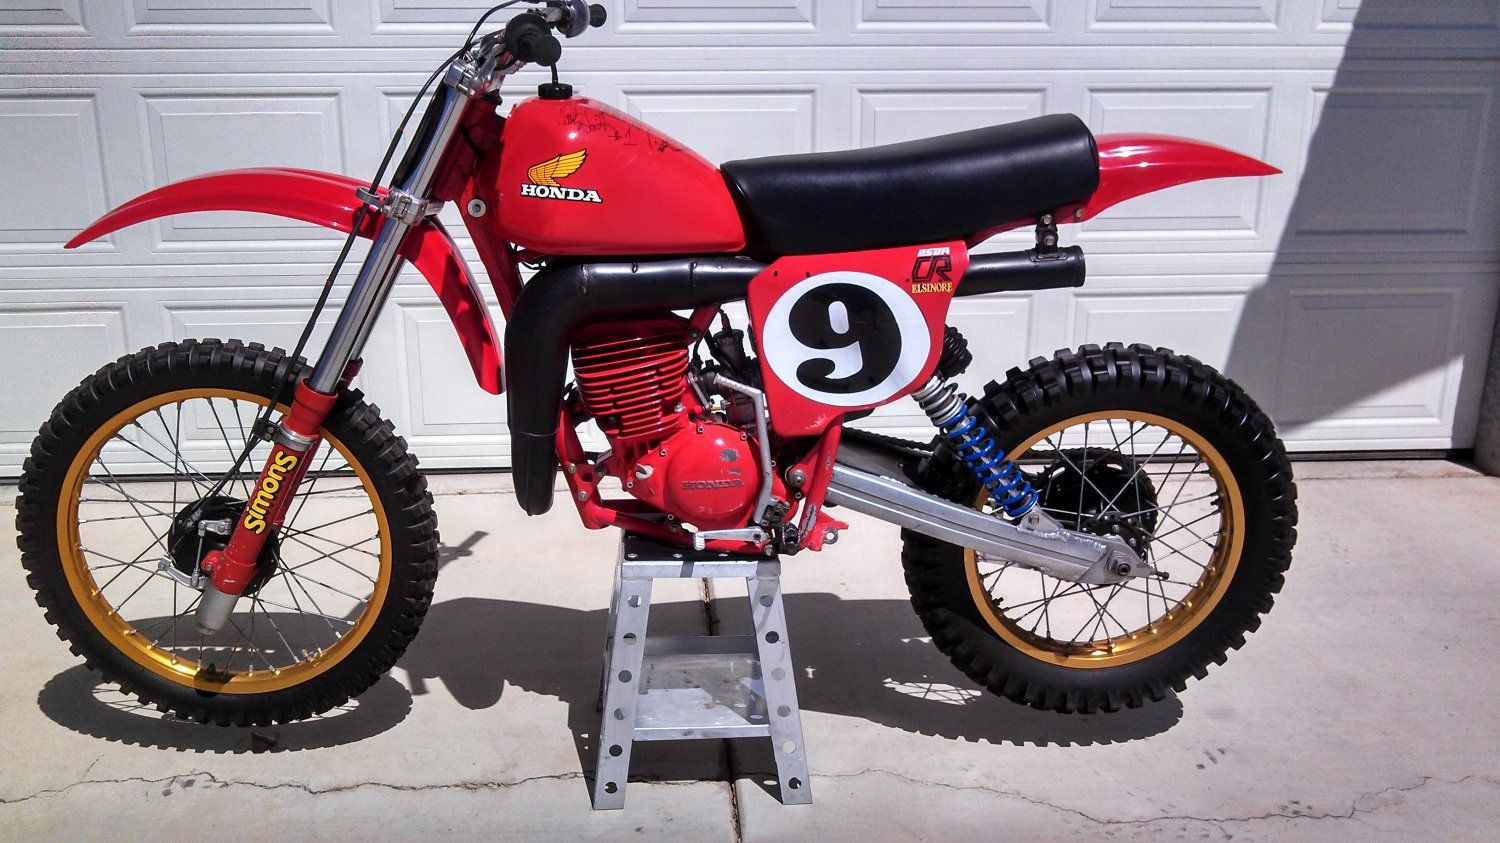 1978 Honda CR250 Elsinore Marty Smith Replica. This Bike Was Used As One Of  Two Display Bikes For Marty Smith's Induction Into The Walk Of Fame At Glen  ...